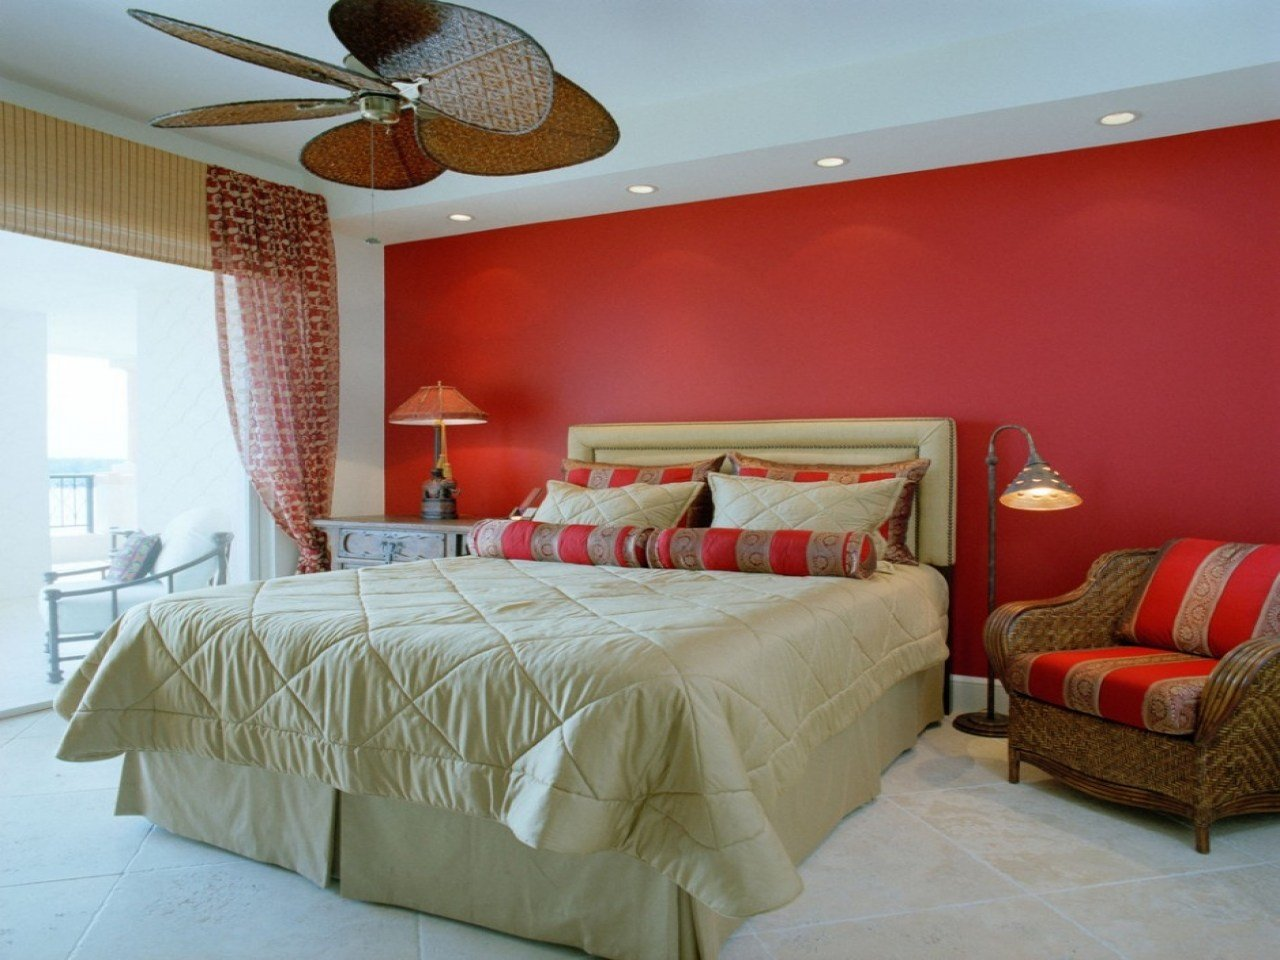 Best Master Room Design Living Room Red Accent Wall Red Accent With Pictures